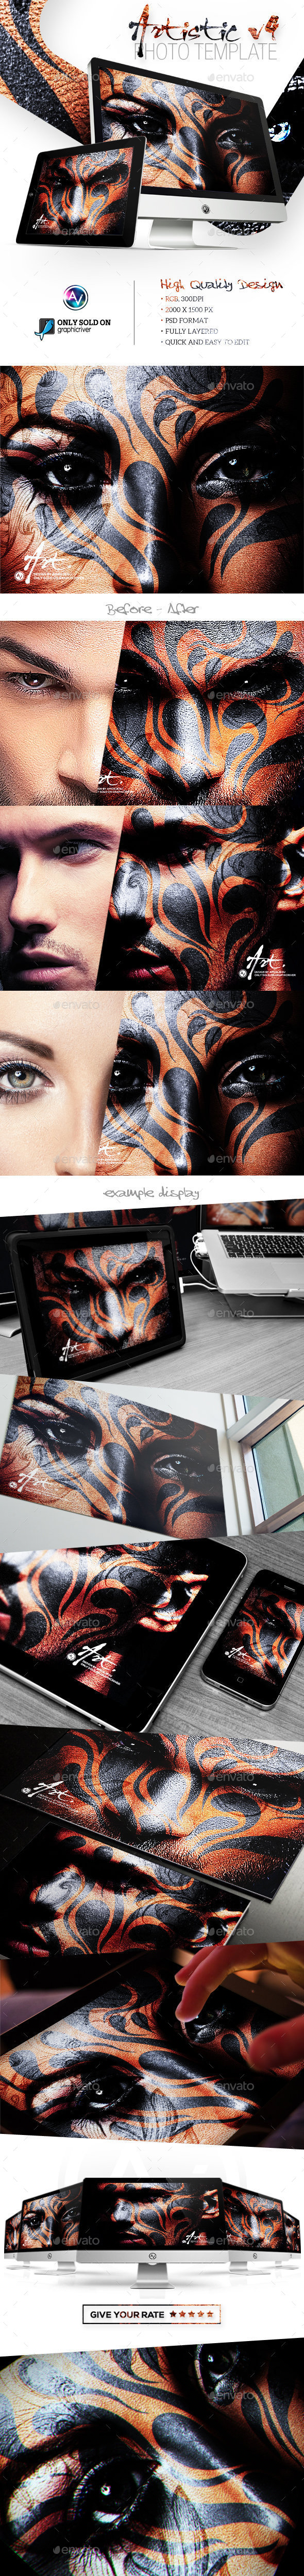 Artistic Photo Template V5 - Artistic Photo Templates